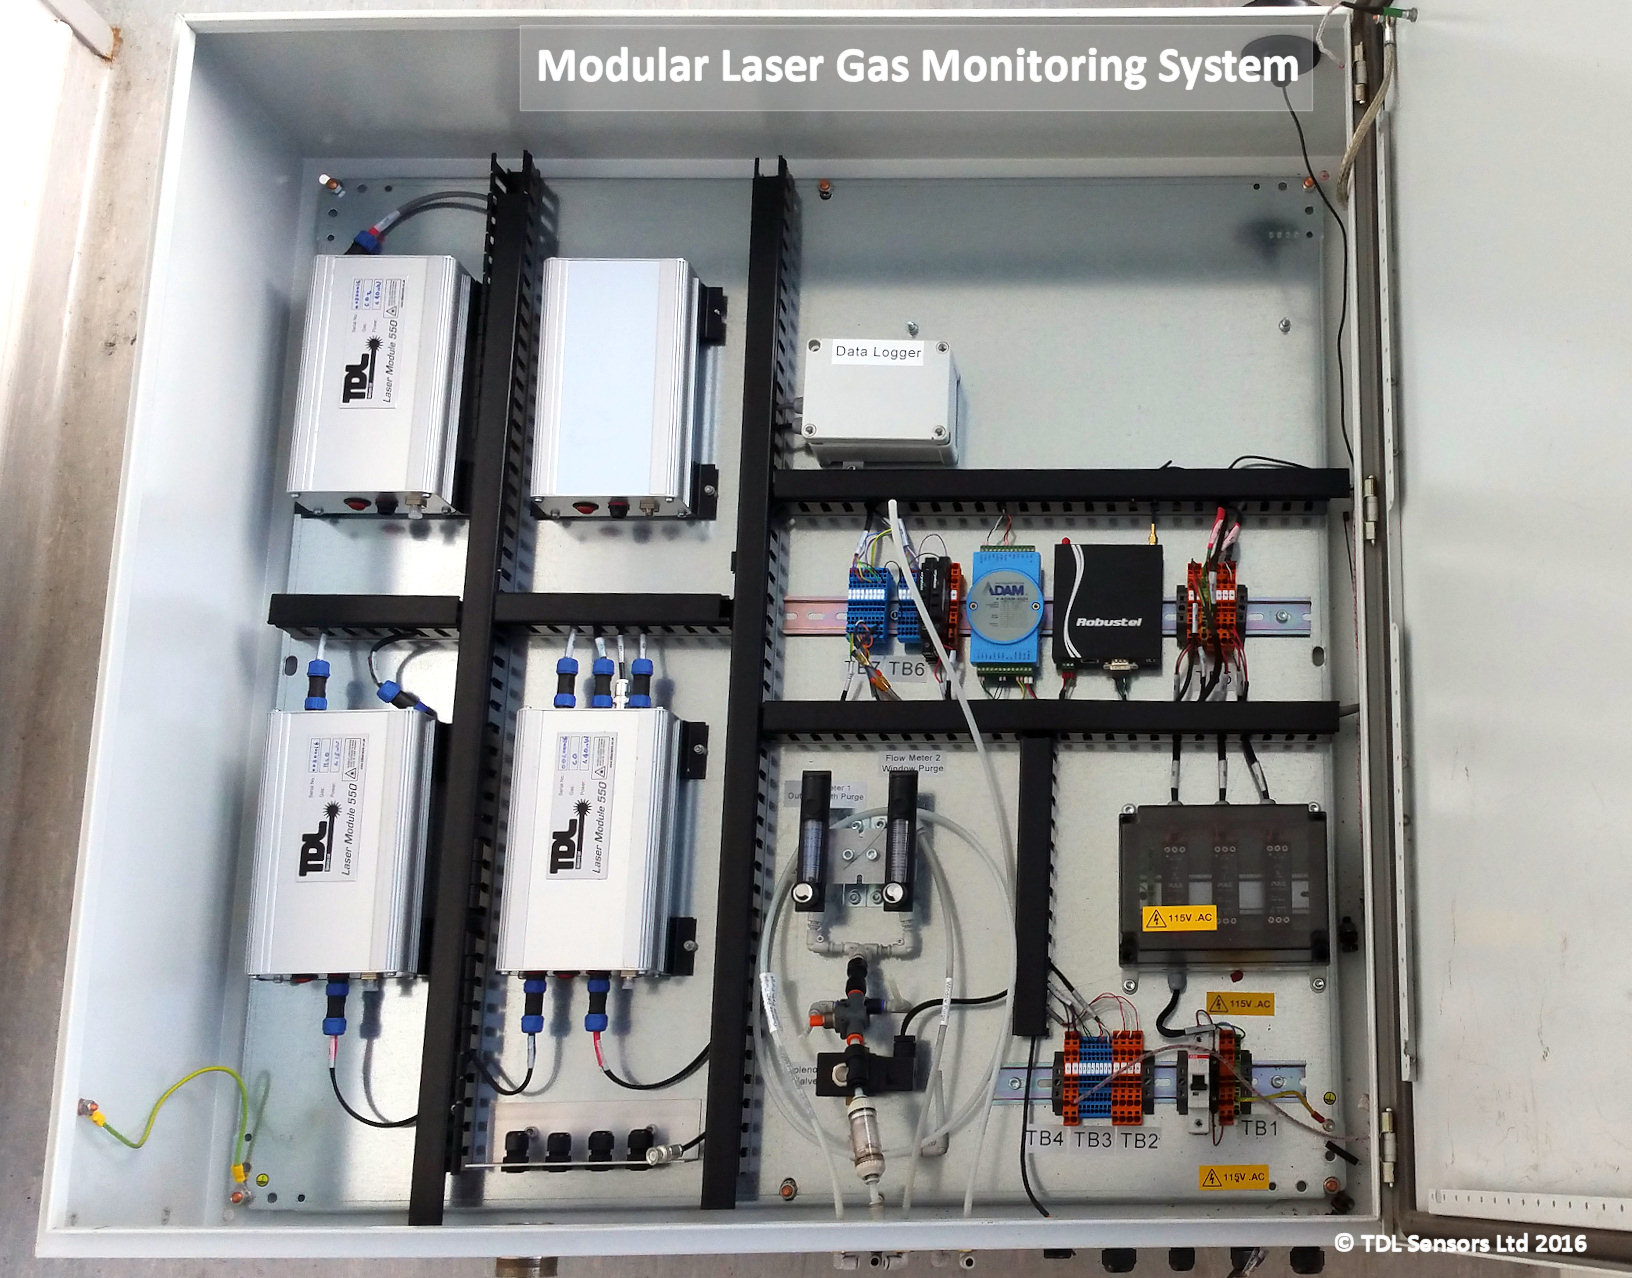 Modular system where modules for different gases can be changed and the analyser can adapt to the customer's needs.